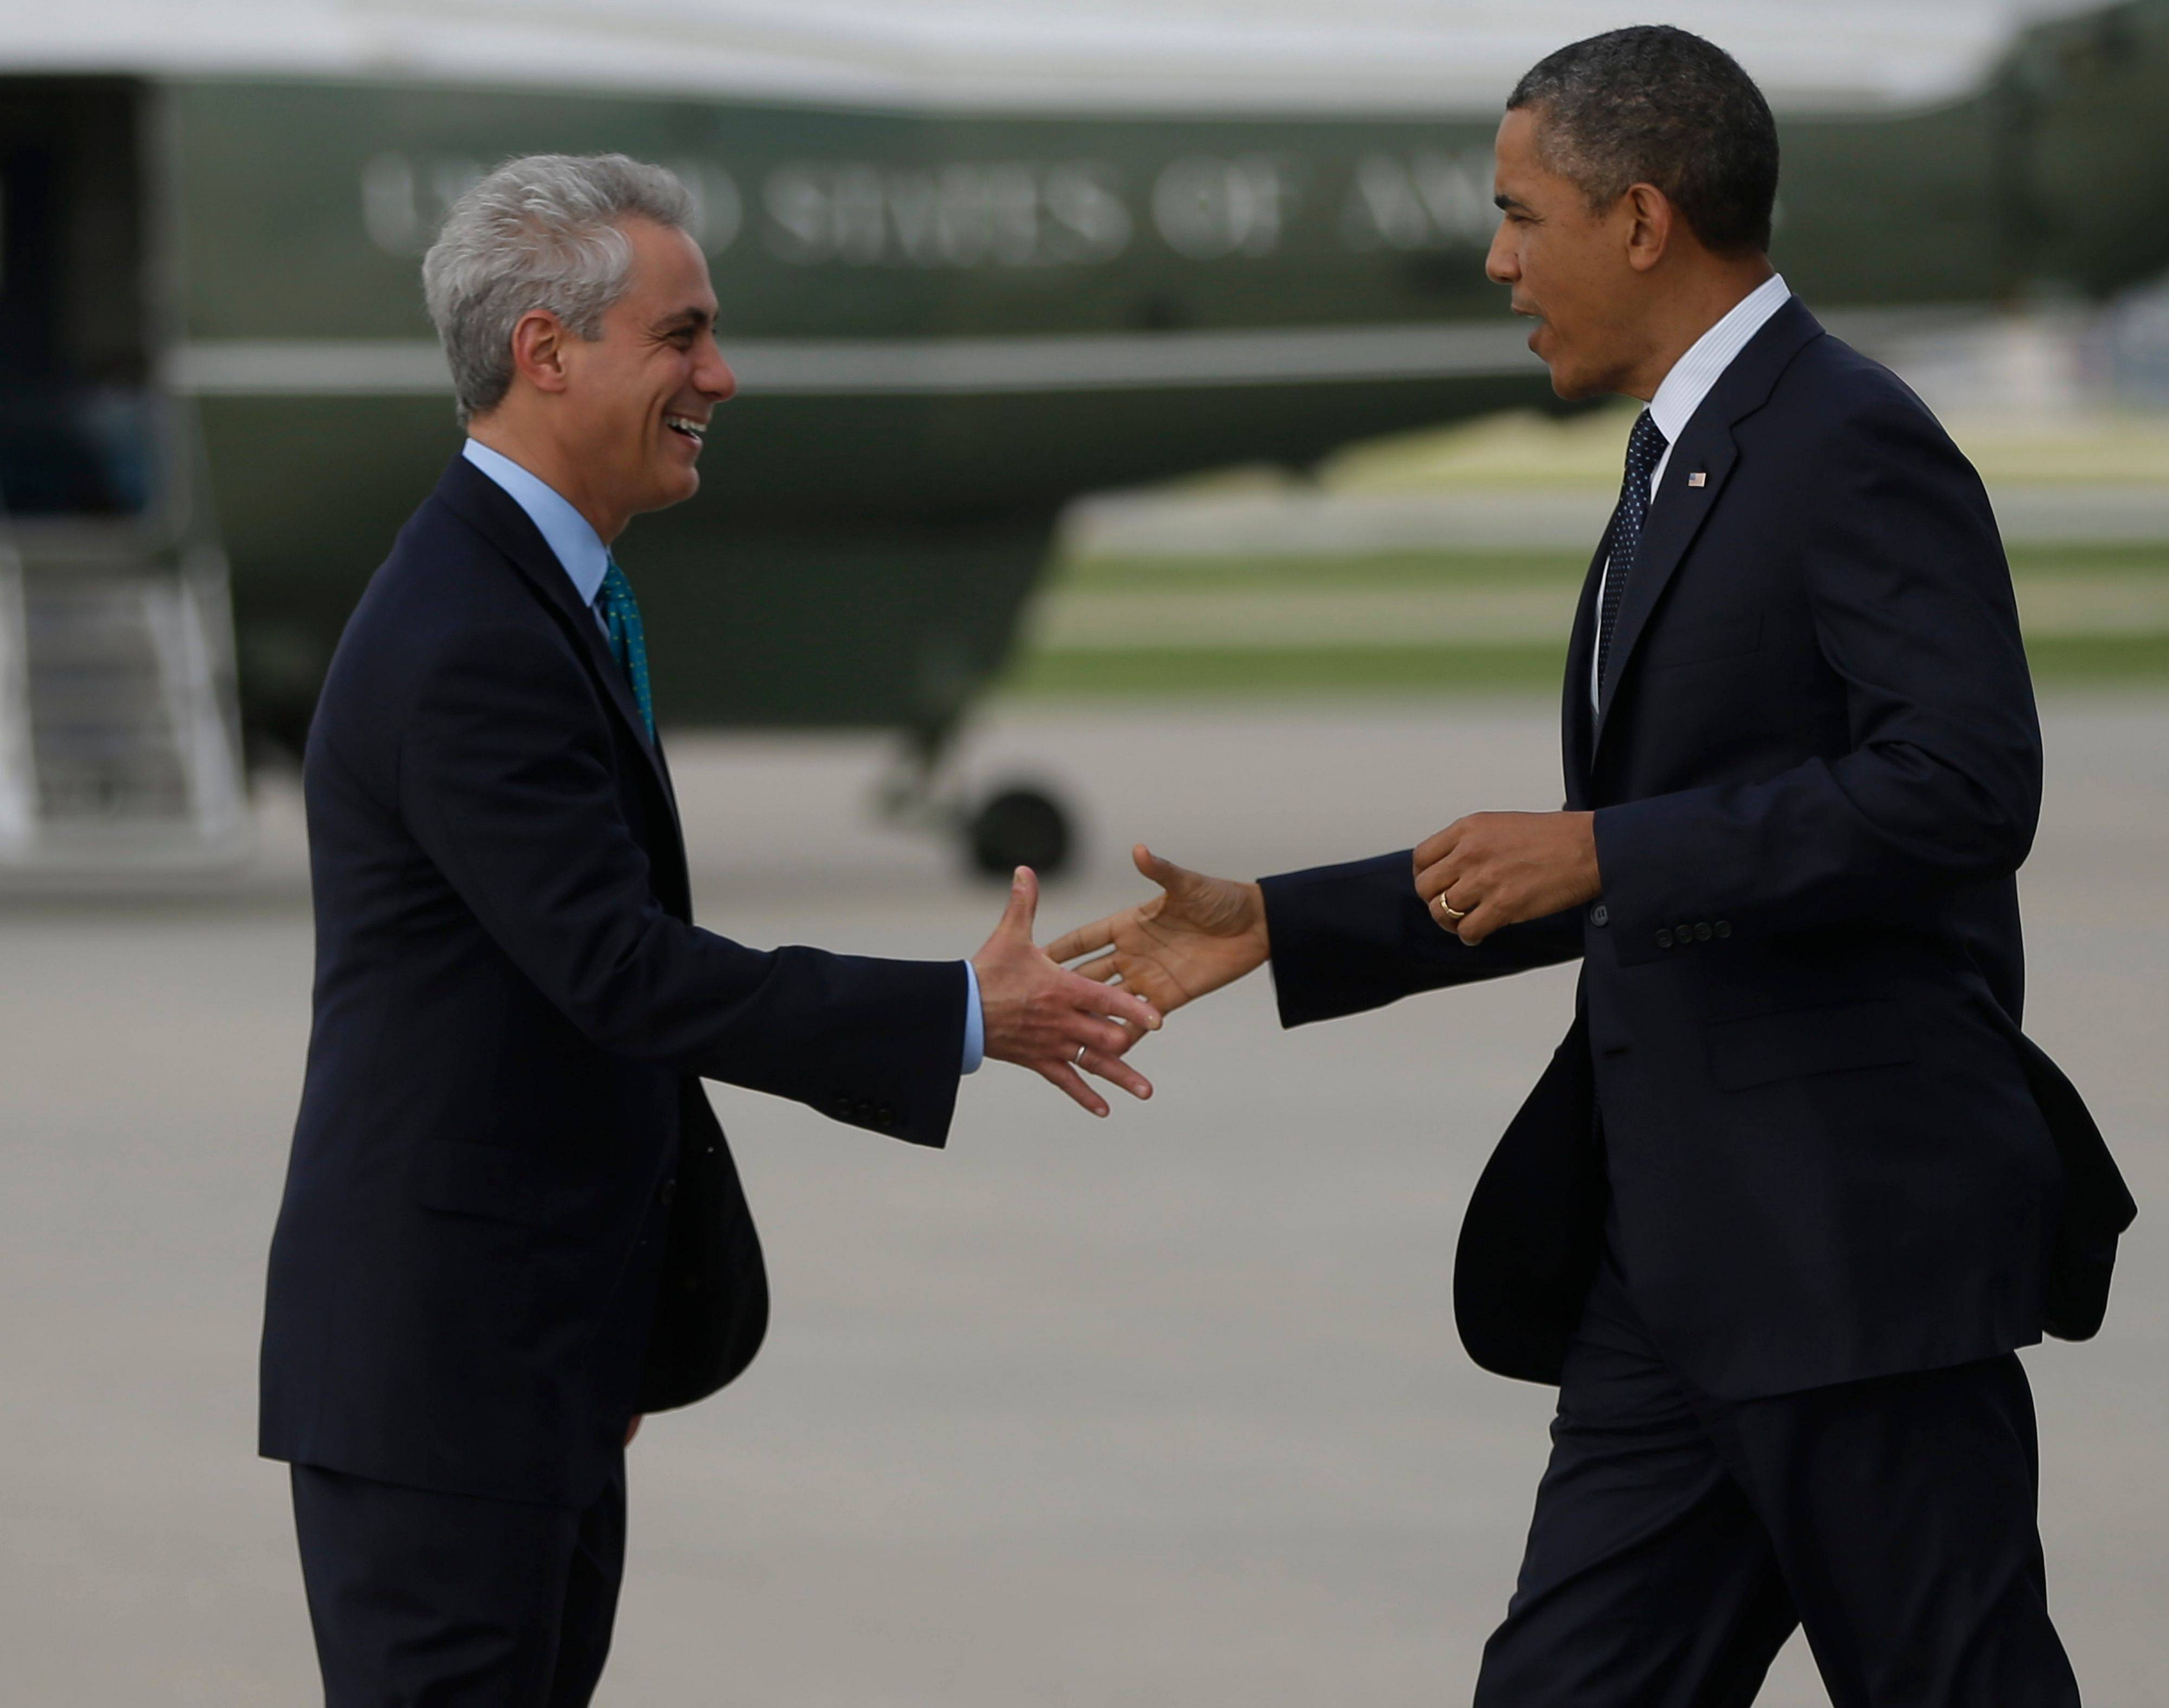 President Barack Obama is greeted by Chicago Mayor Rahm Emanuel on the tarmac upon his arrival at O'Hare International Airport Wednesday.